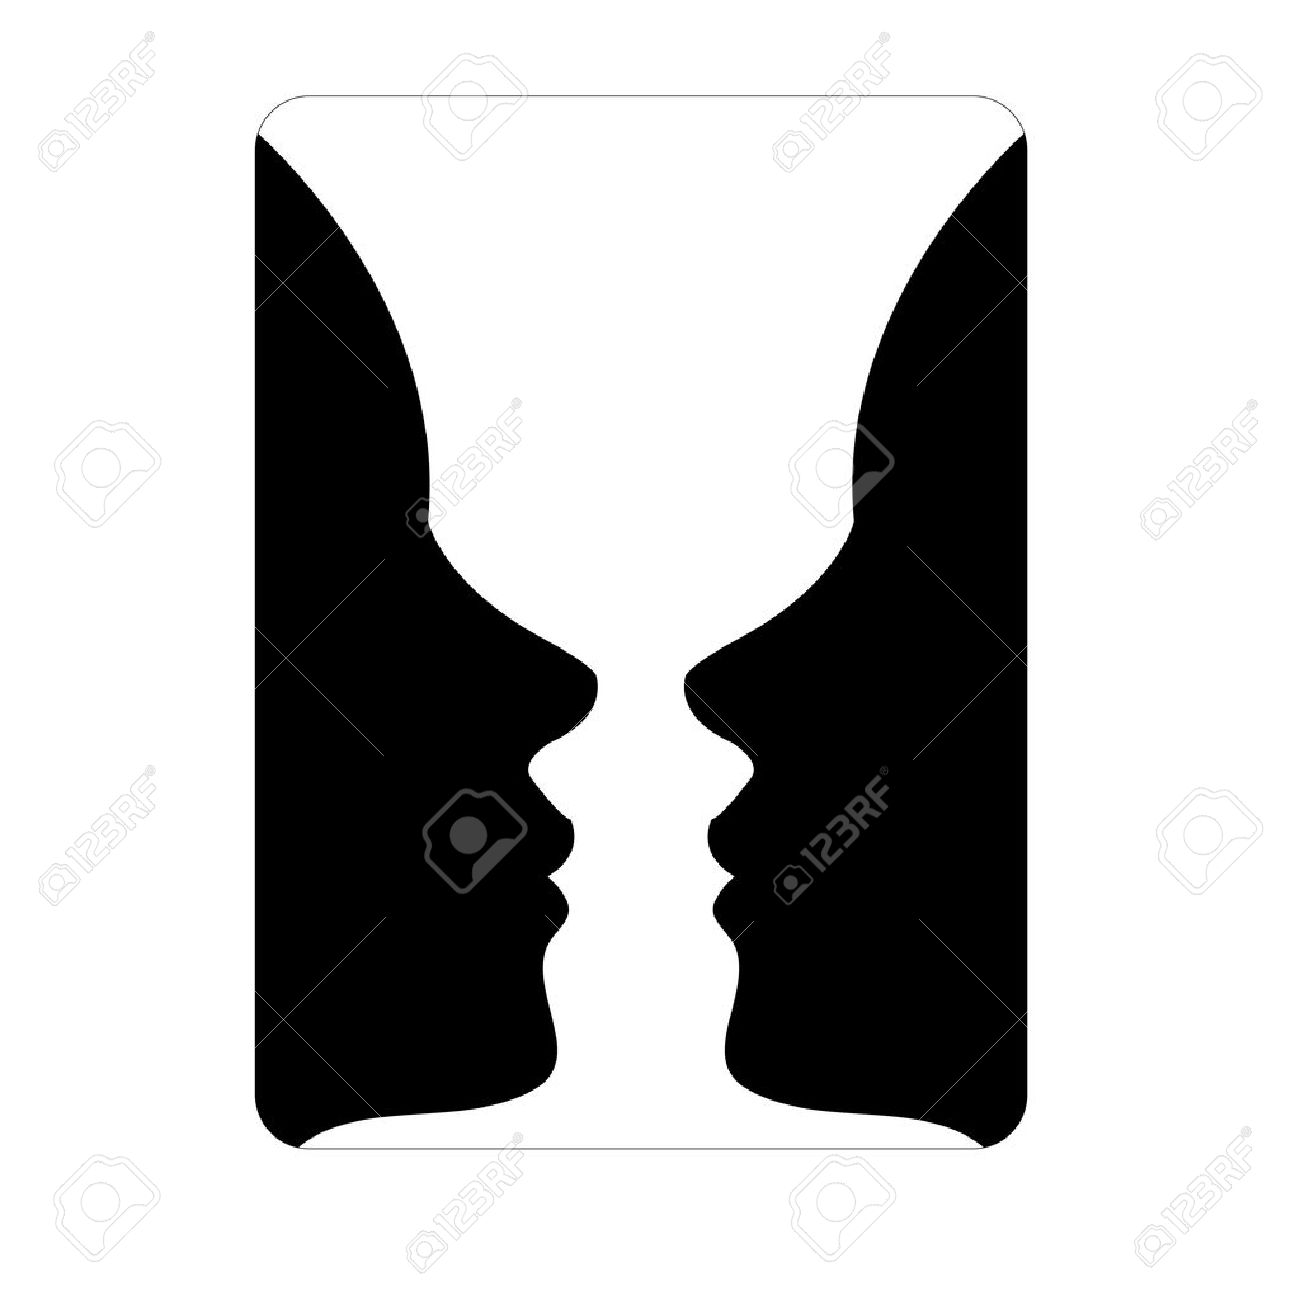 Faces or vase illusion of two faces appearing like a vase faces or vase illusion of two faces appearing like a vase stock vector 32566288 reviewsmspy